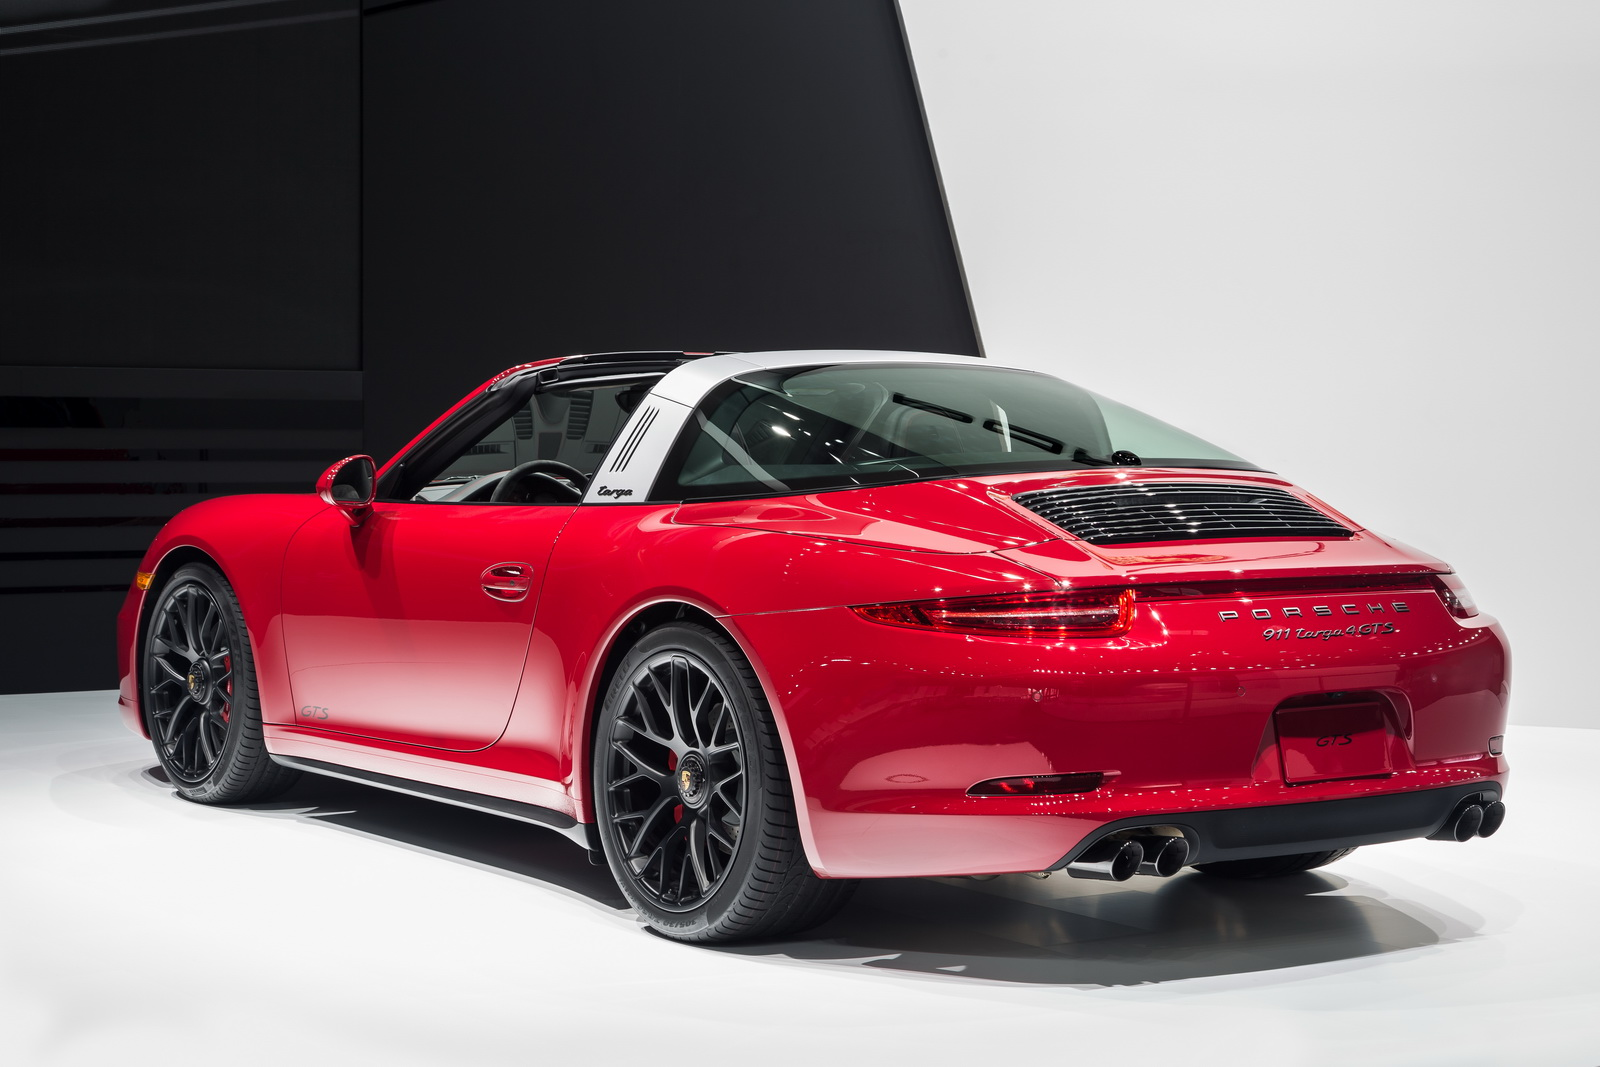 porsche 911 targa 4 gts world premiere at 2015 naias. Black Bedroom Furniture Sets. Home Design Ideas